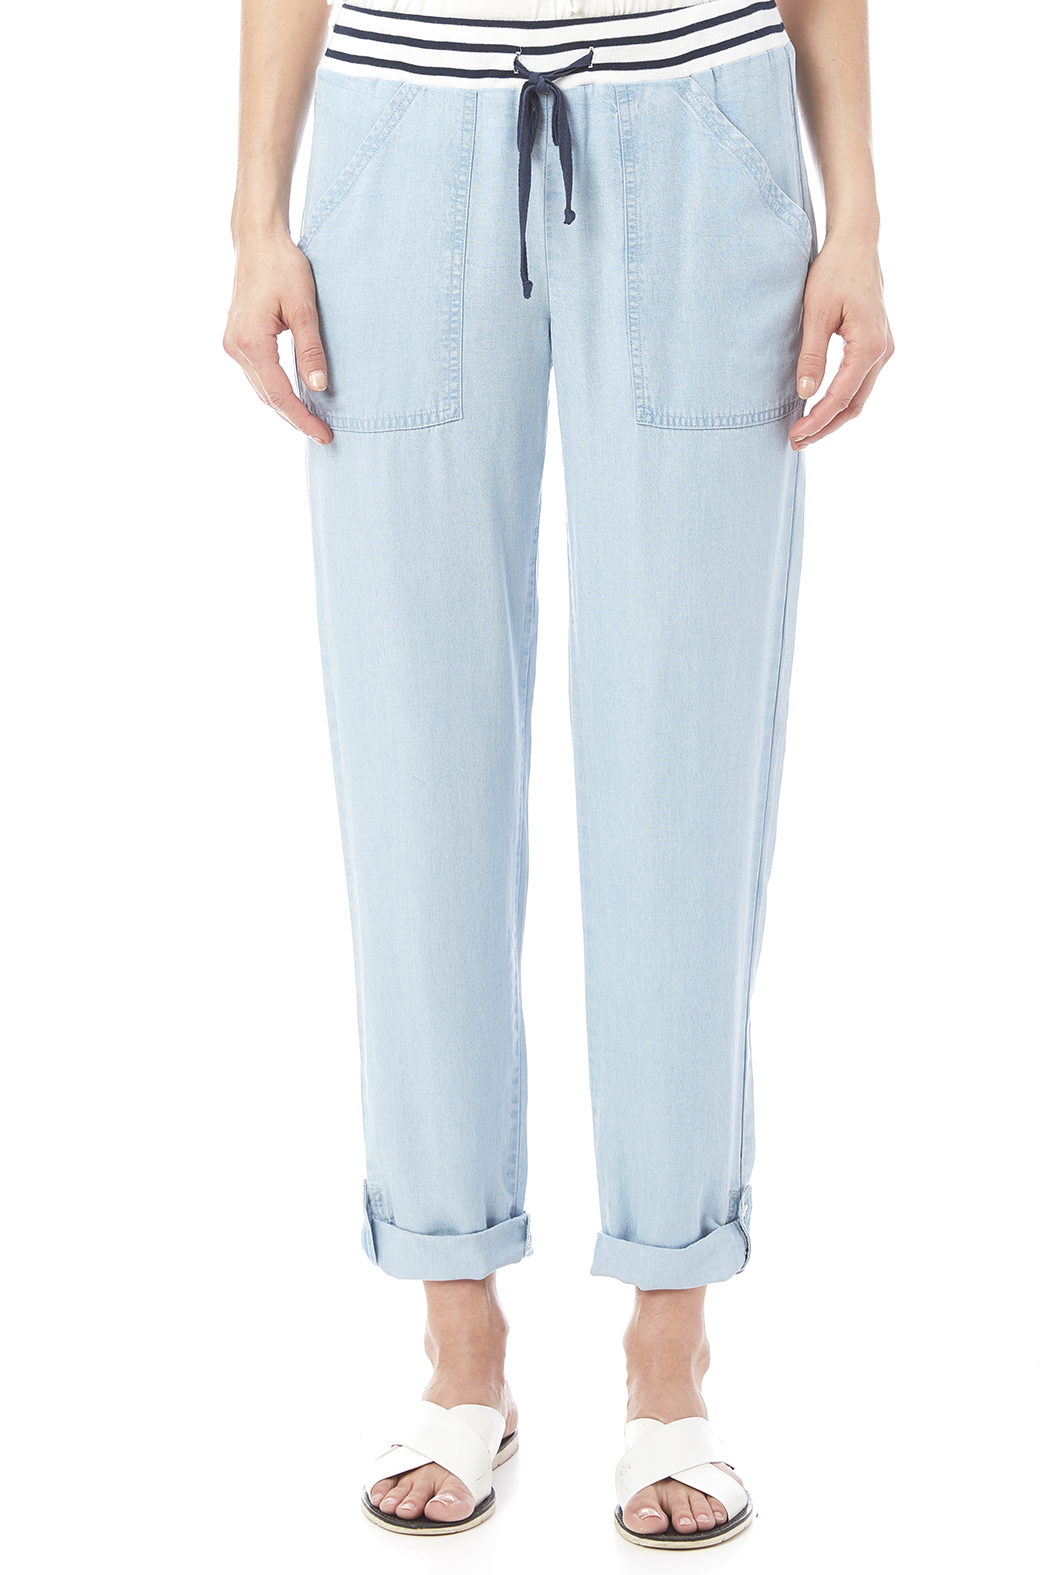 Splendid Chambray Pant - Side Cropped Image